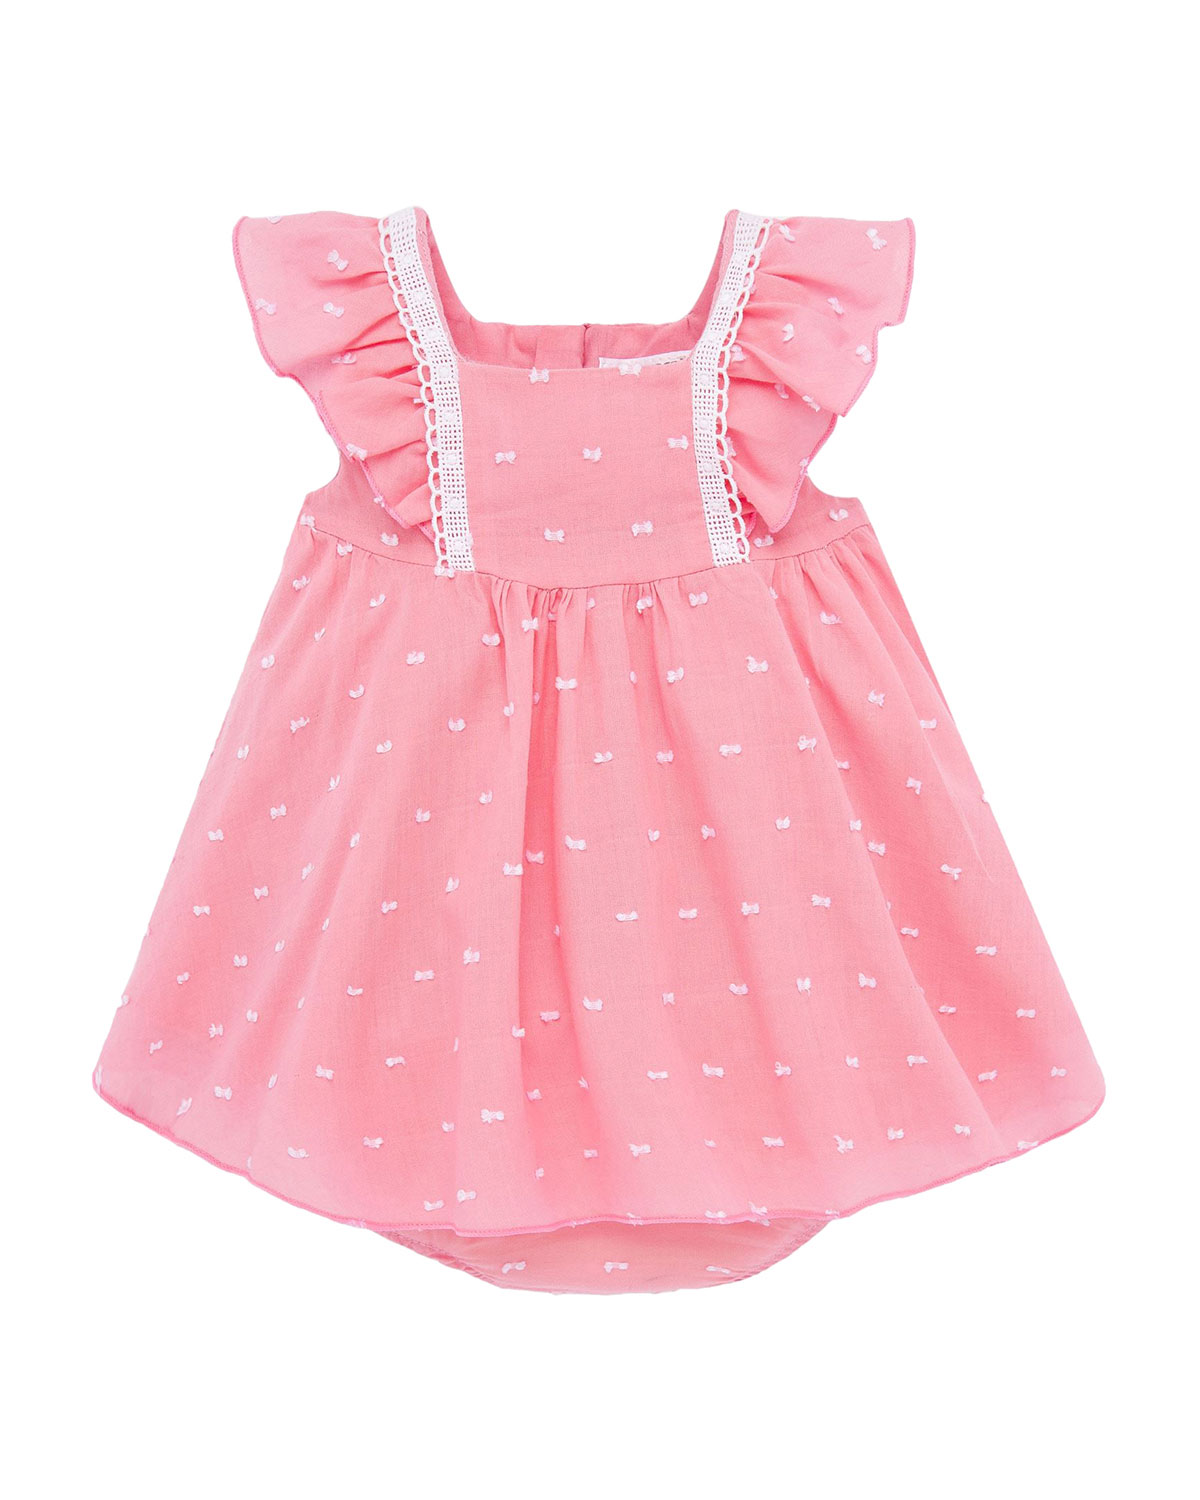 Mayoral Girl's Flutter-Sleeve Swiss Dot Dress w/ Bloomers, Size 4-18 Months